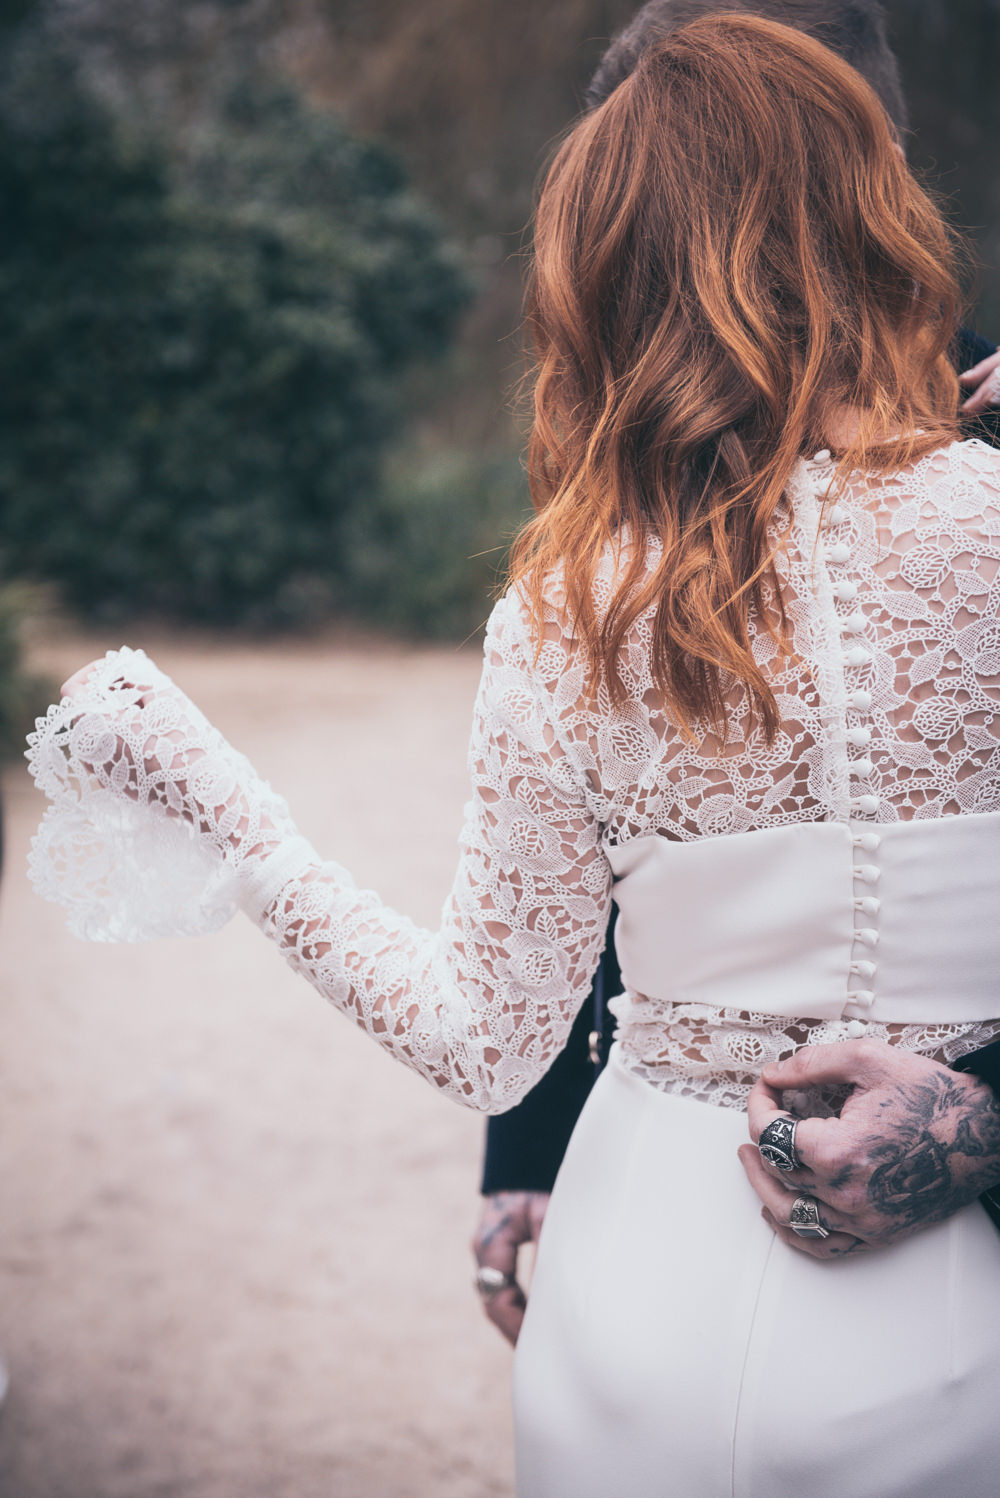 Dress Gown Bride Bridal Lace Sleeves Andrea Hawkes Bridal Buttons Modern Wedding Ideas Cat Arwel Photography